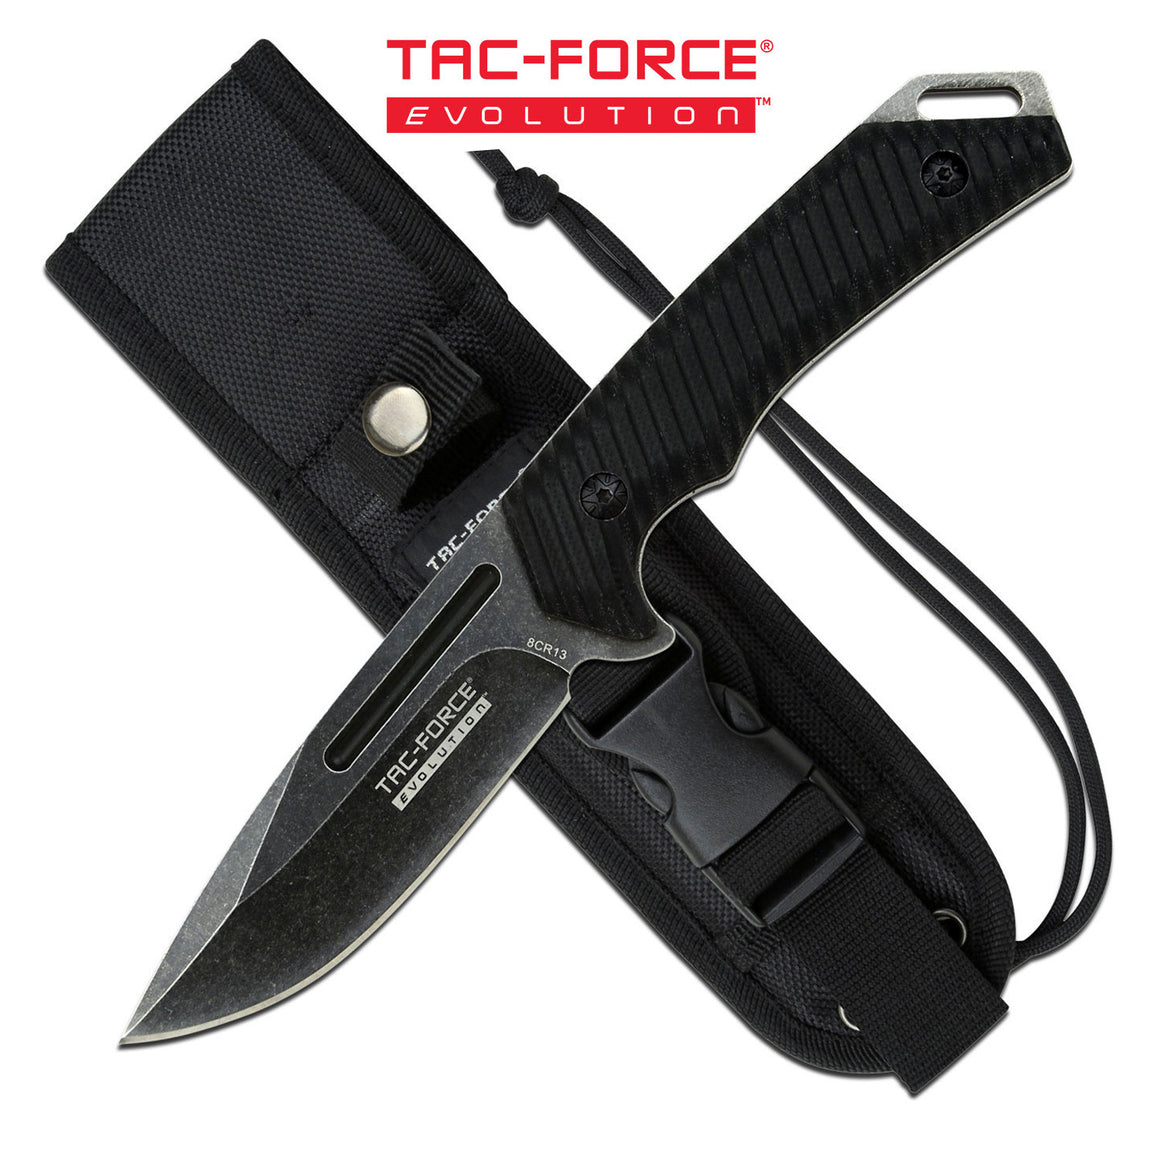 Tac-Force Evolution TFE-FIX005-BK Fixed Blade Knife